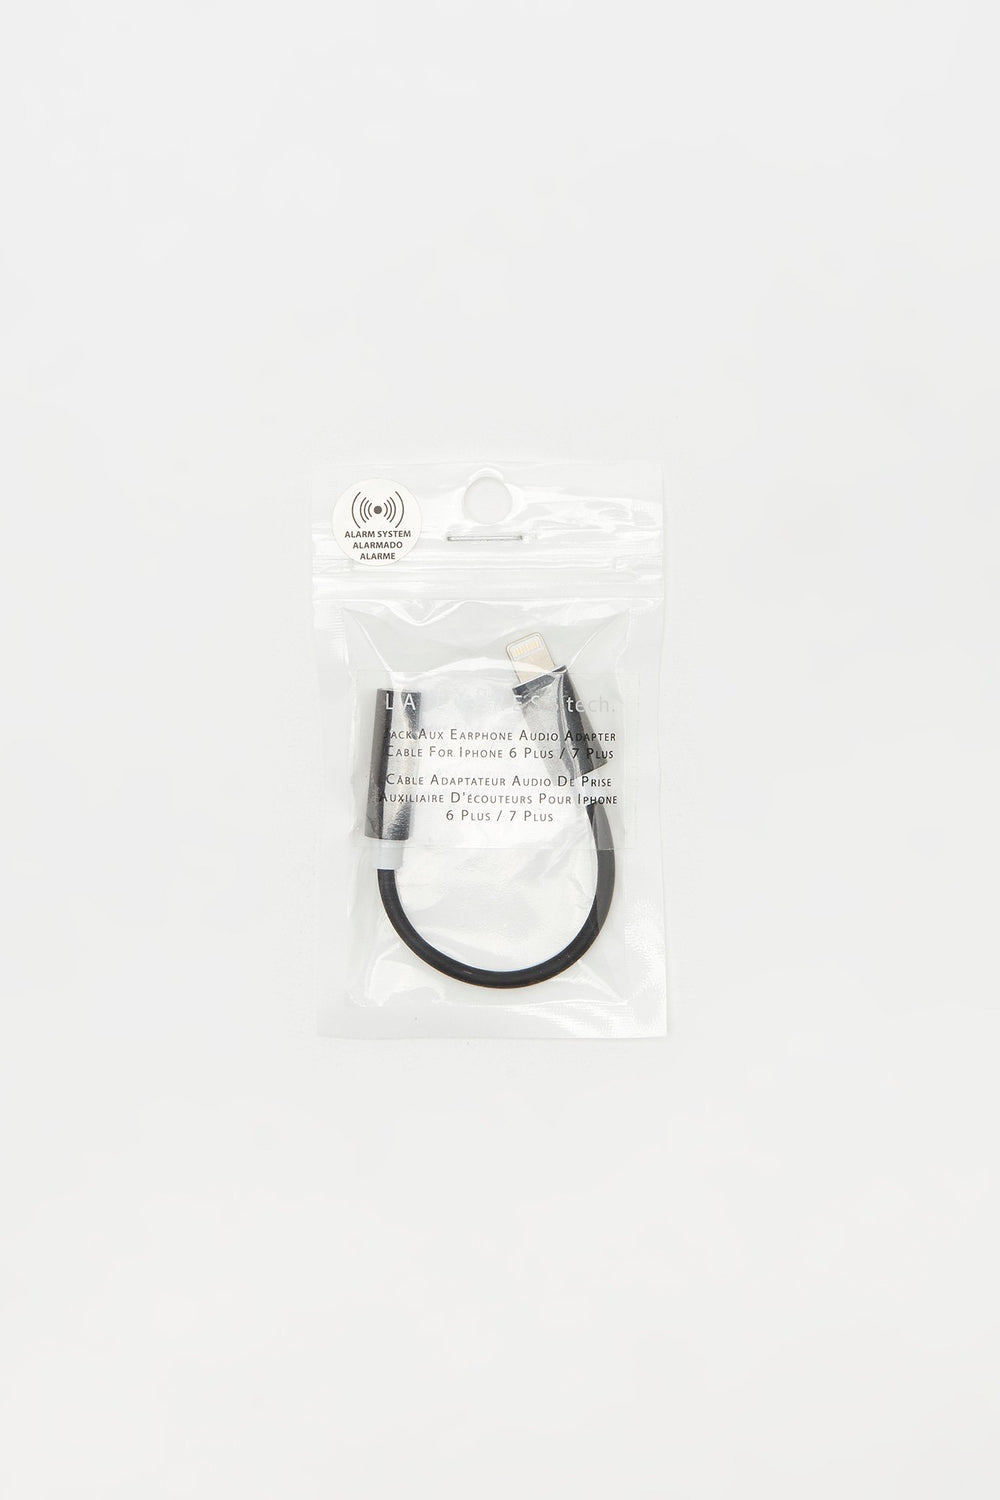 iPhone Earphone Audio Adapter Black